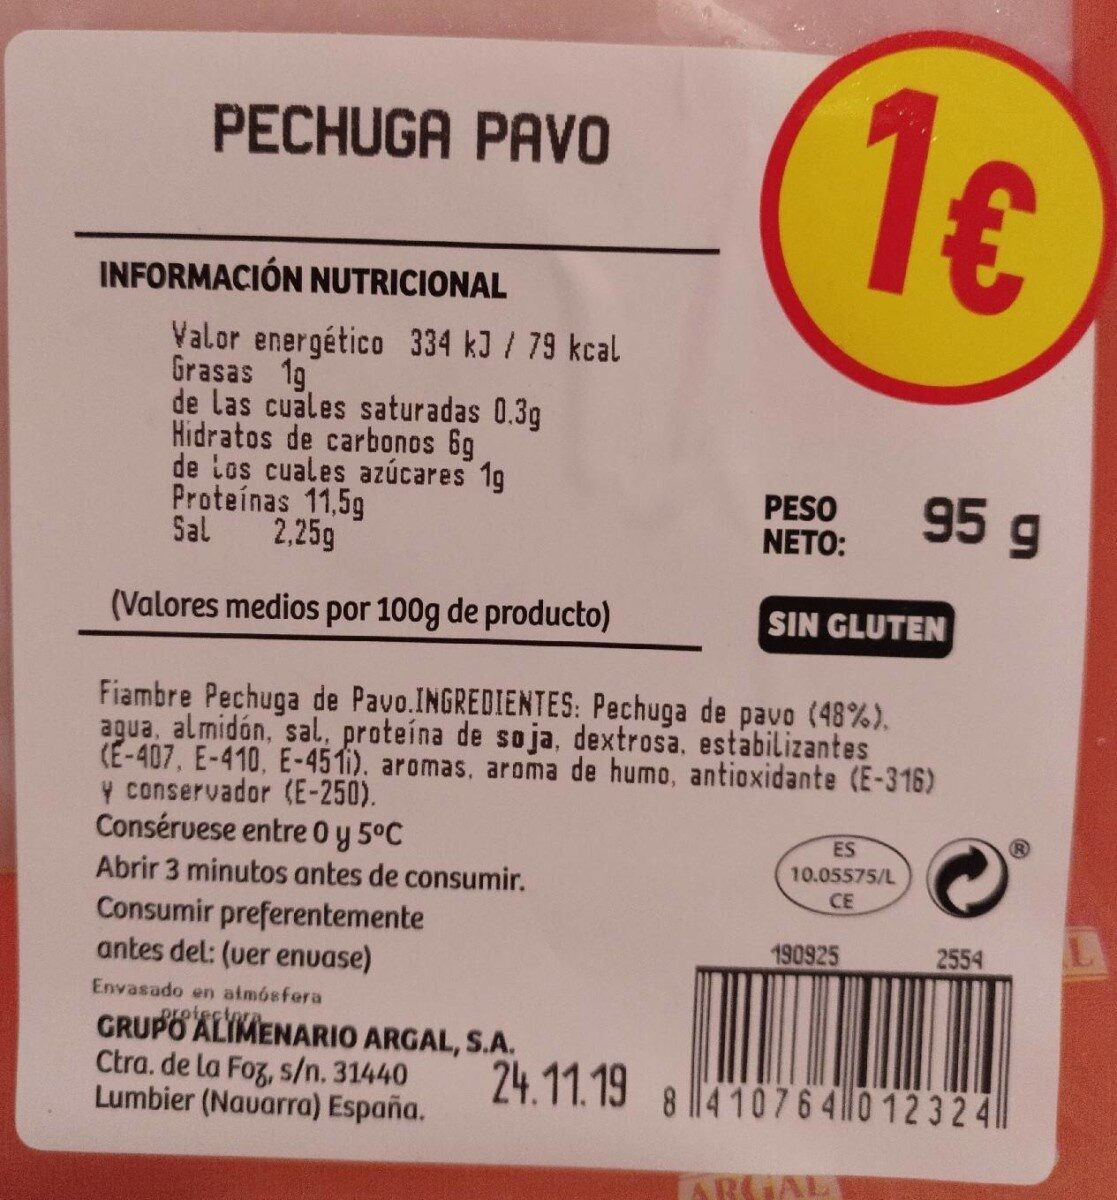 Pechuga pavo - Nutrition facts